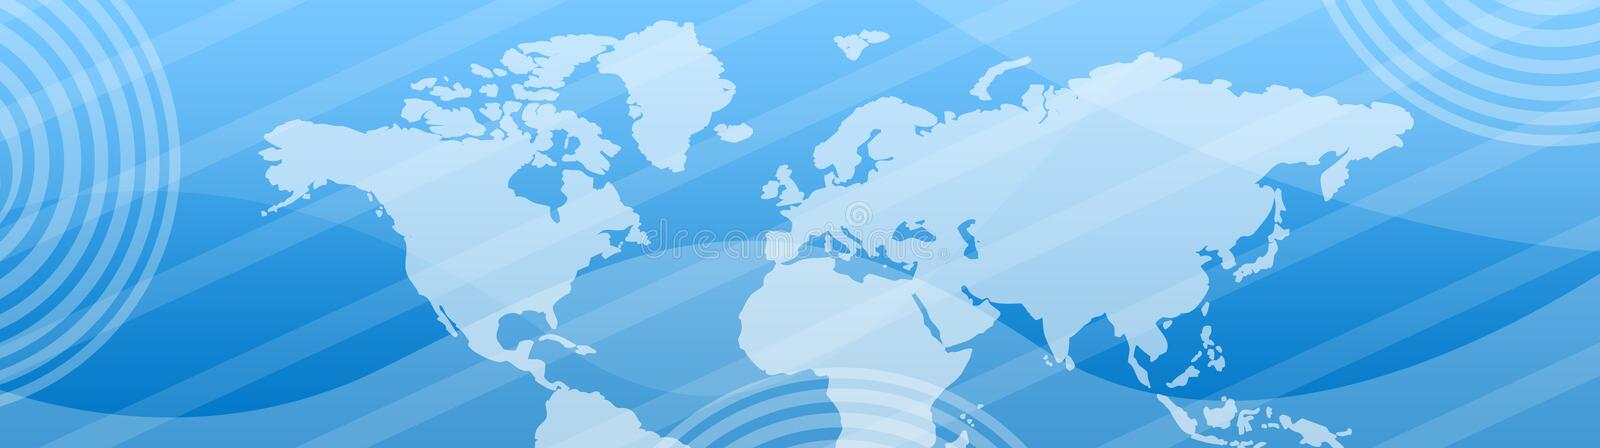 Download Business And Travel Web Header Stock Illustration - Image: 3996773